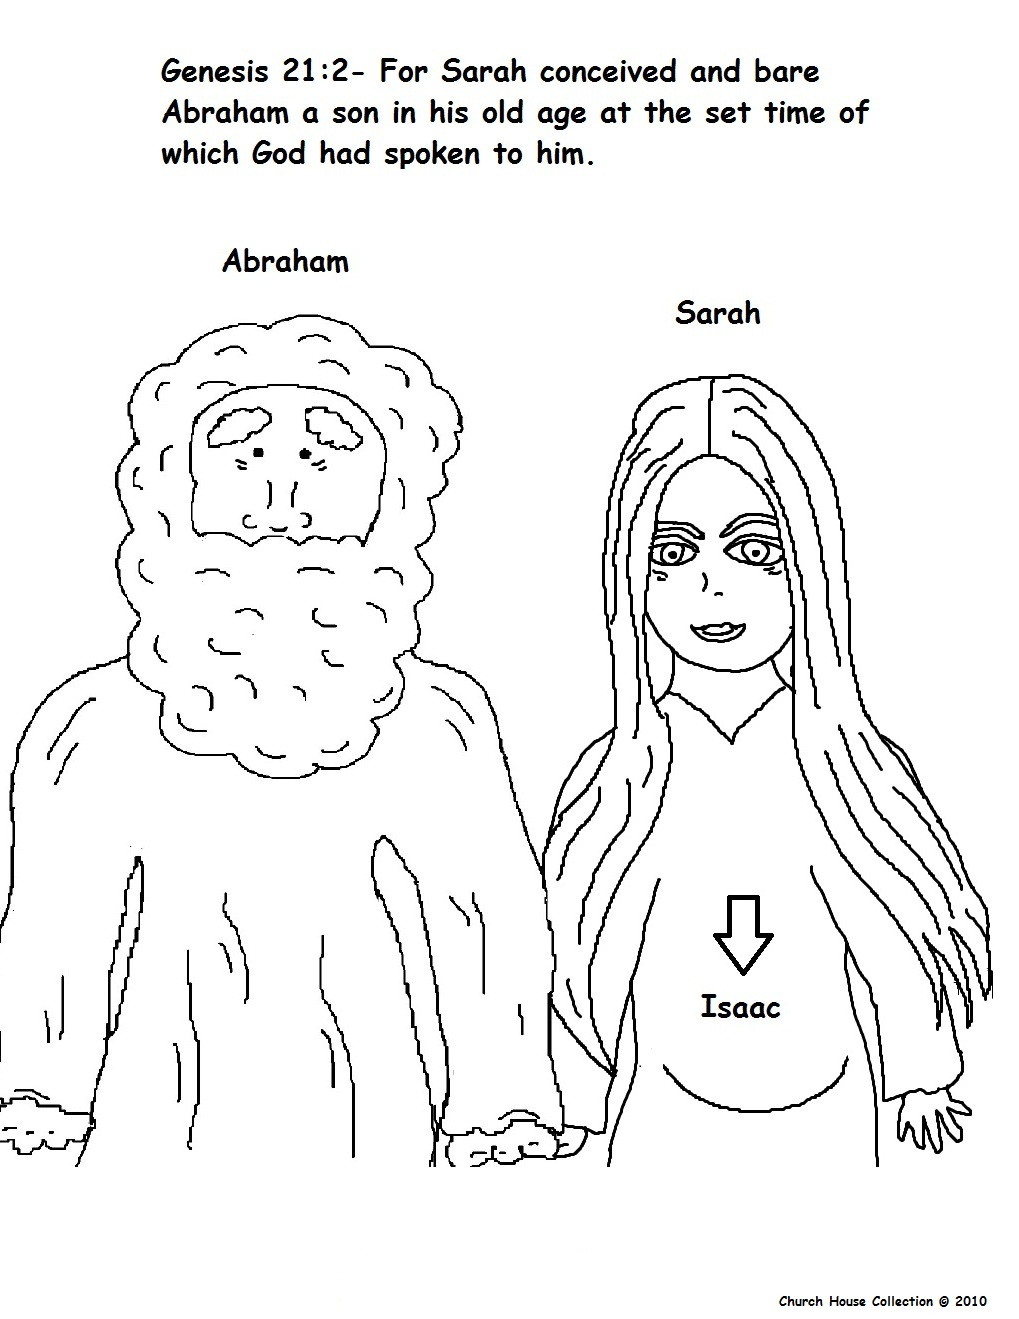 Coloring pages zacchaeus -  Colouring Page Of Abram And Sarah Pregnant At Http Www Churchhousecollection Com Resources Abraham 20and 20sarah 20coloring 20page Jpg